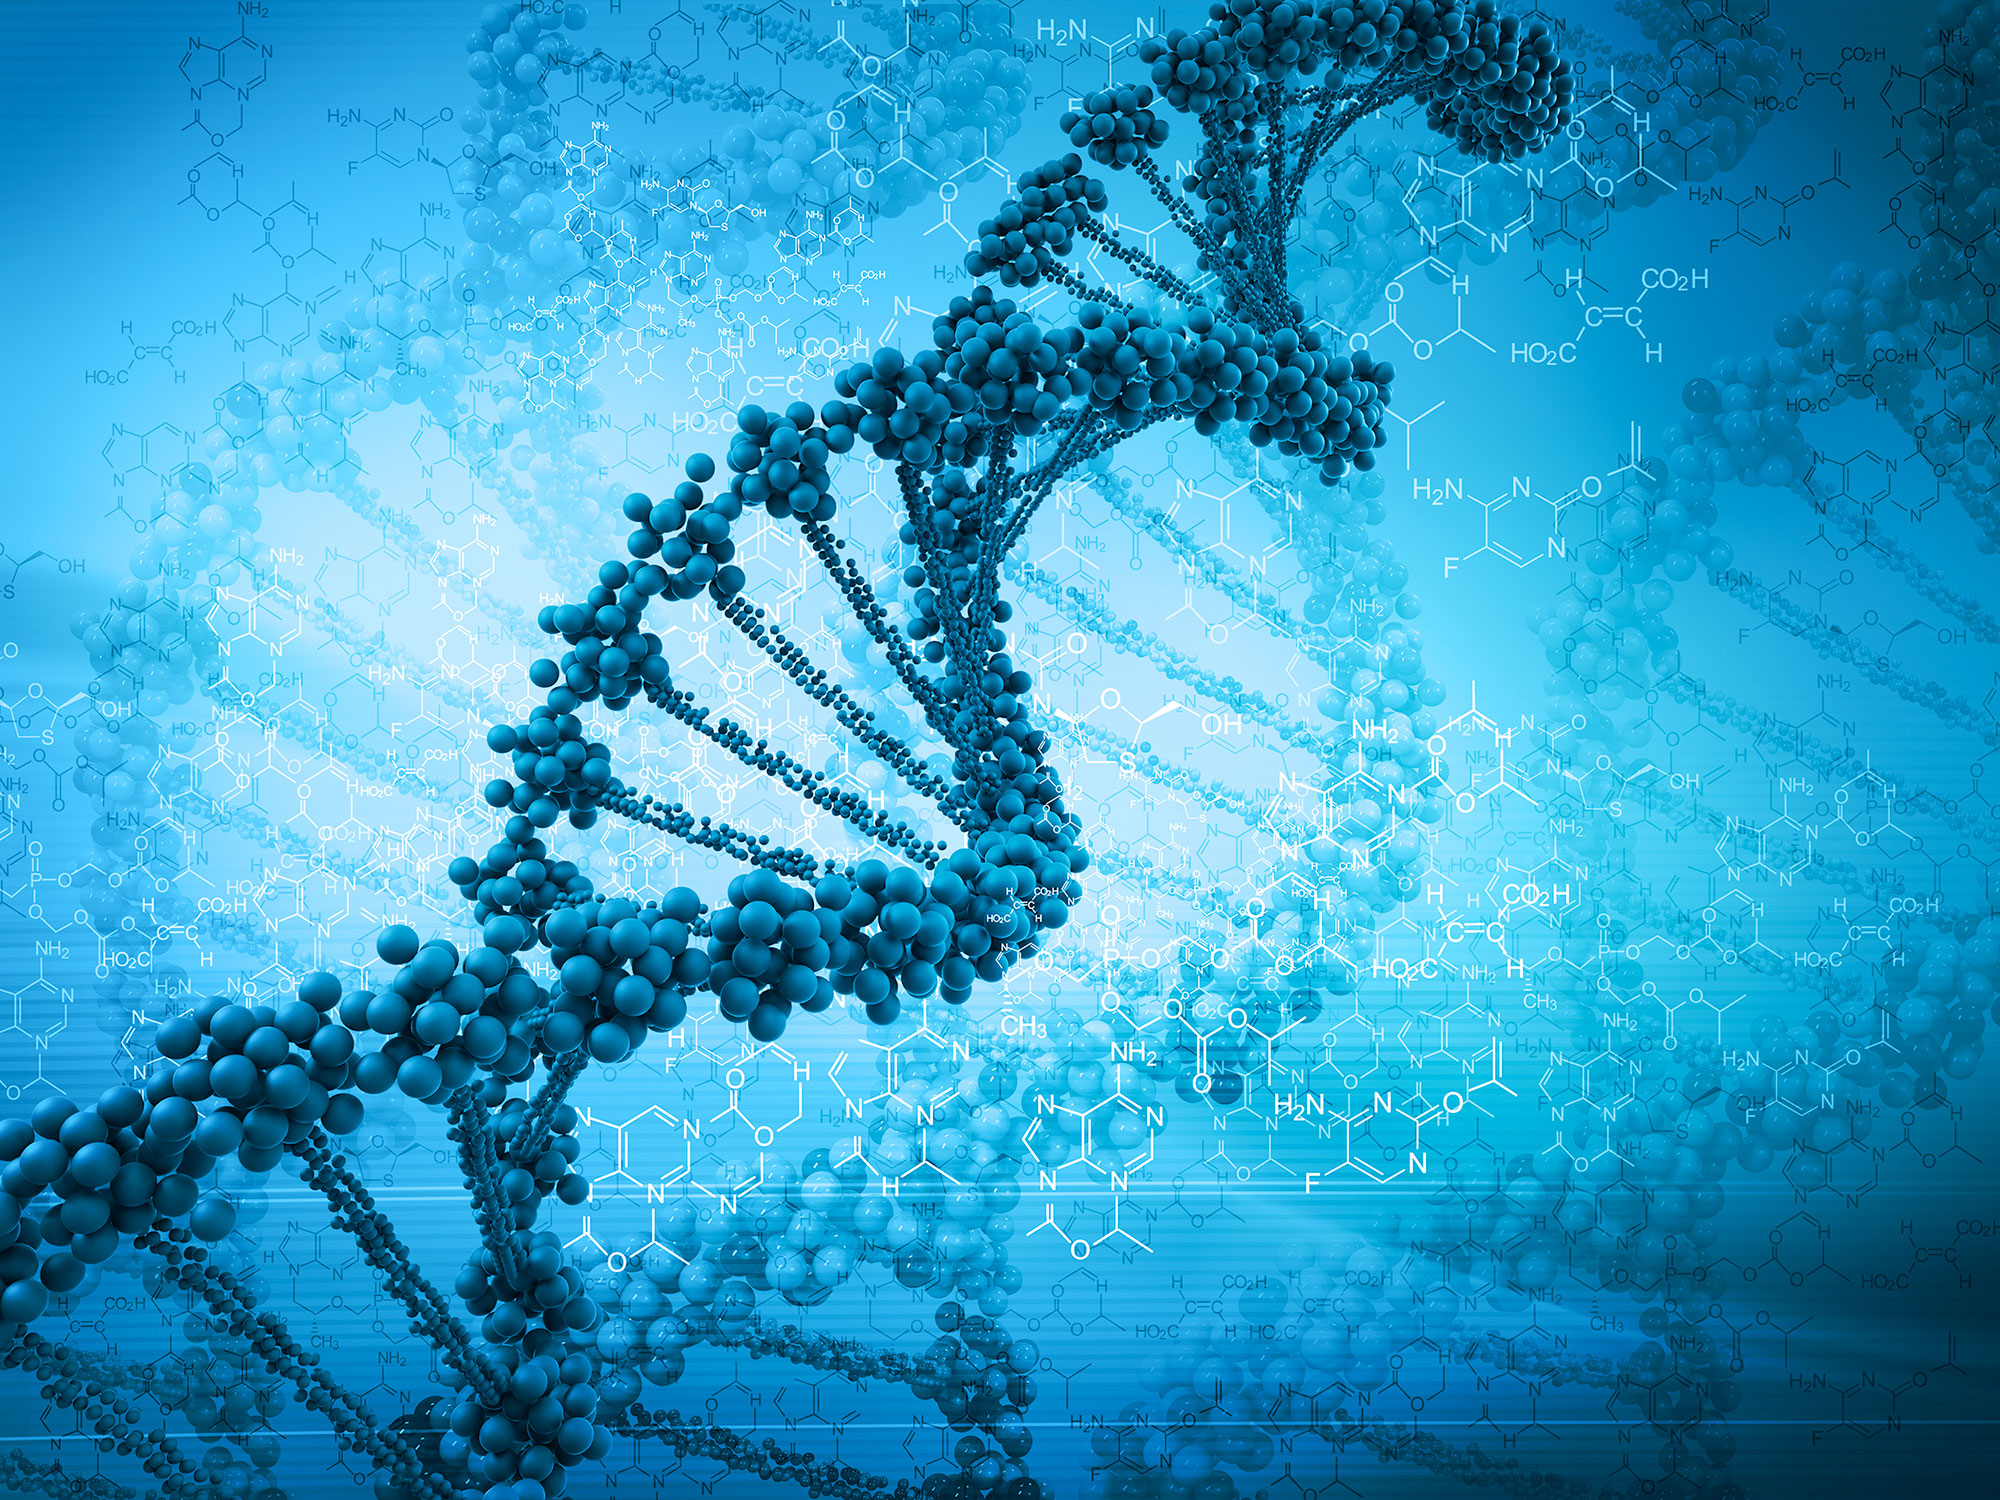 A stylized image of a DNA double helix is seen overlaid on faint depictions of molecules.